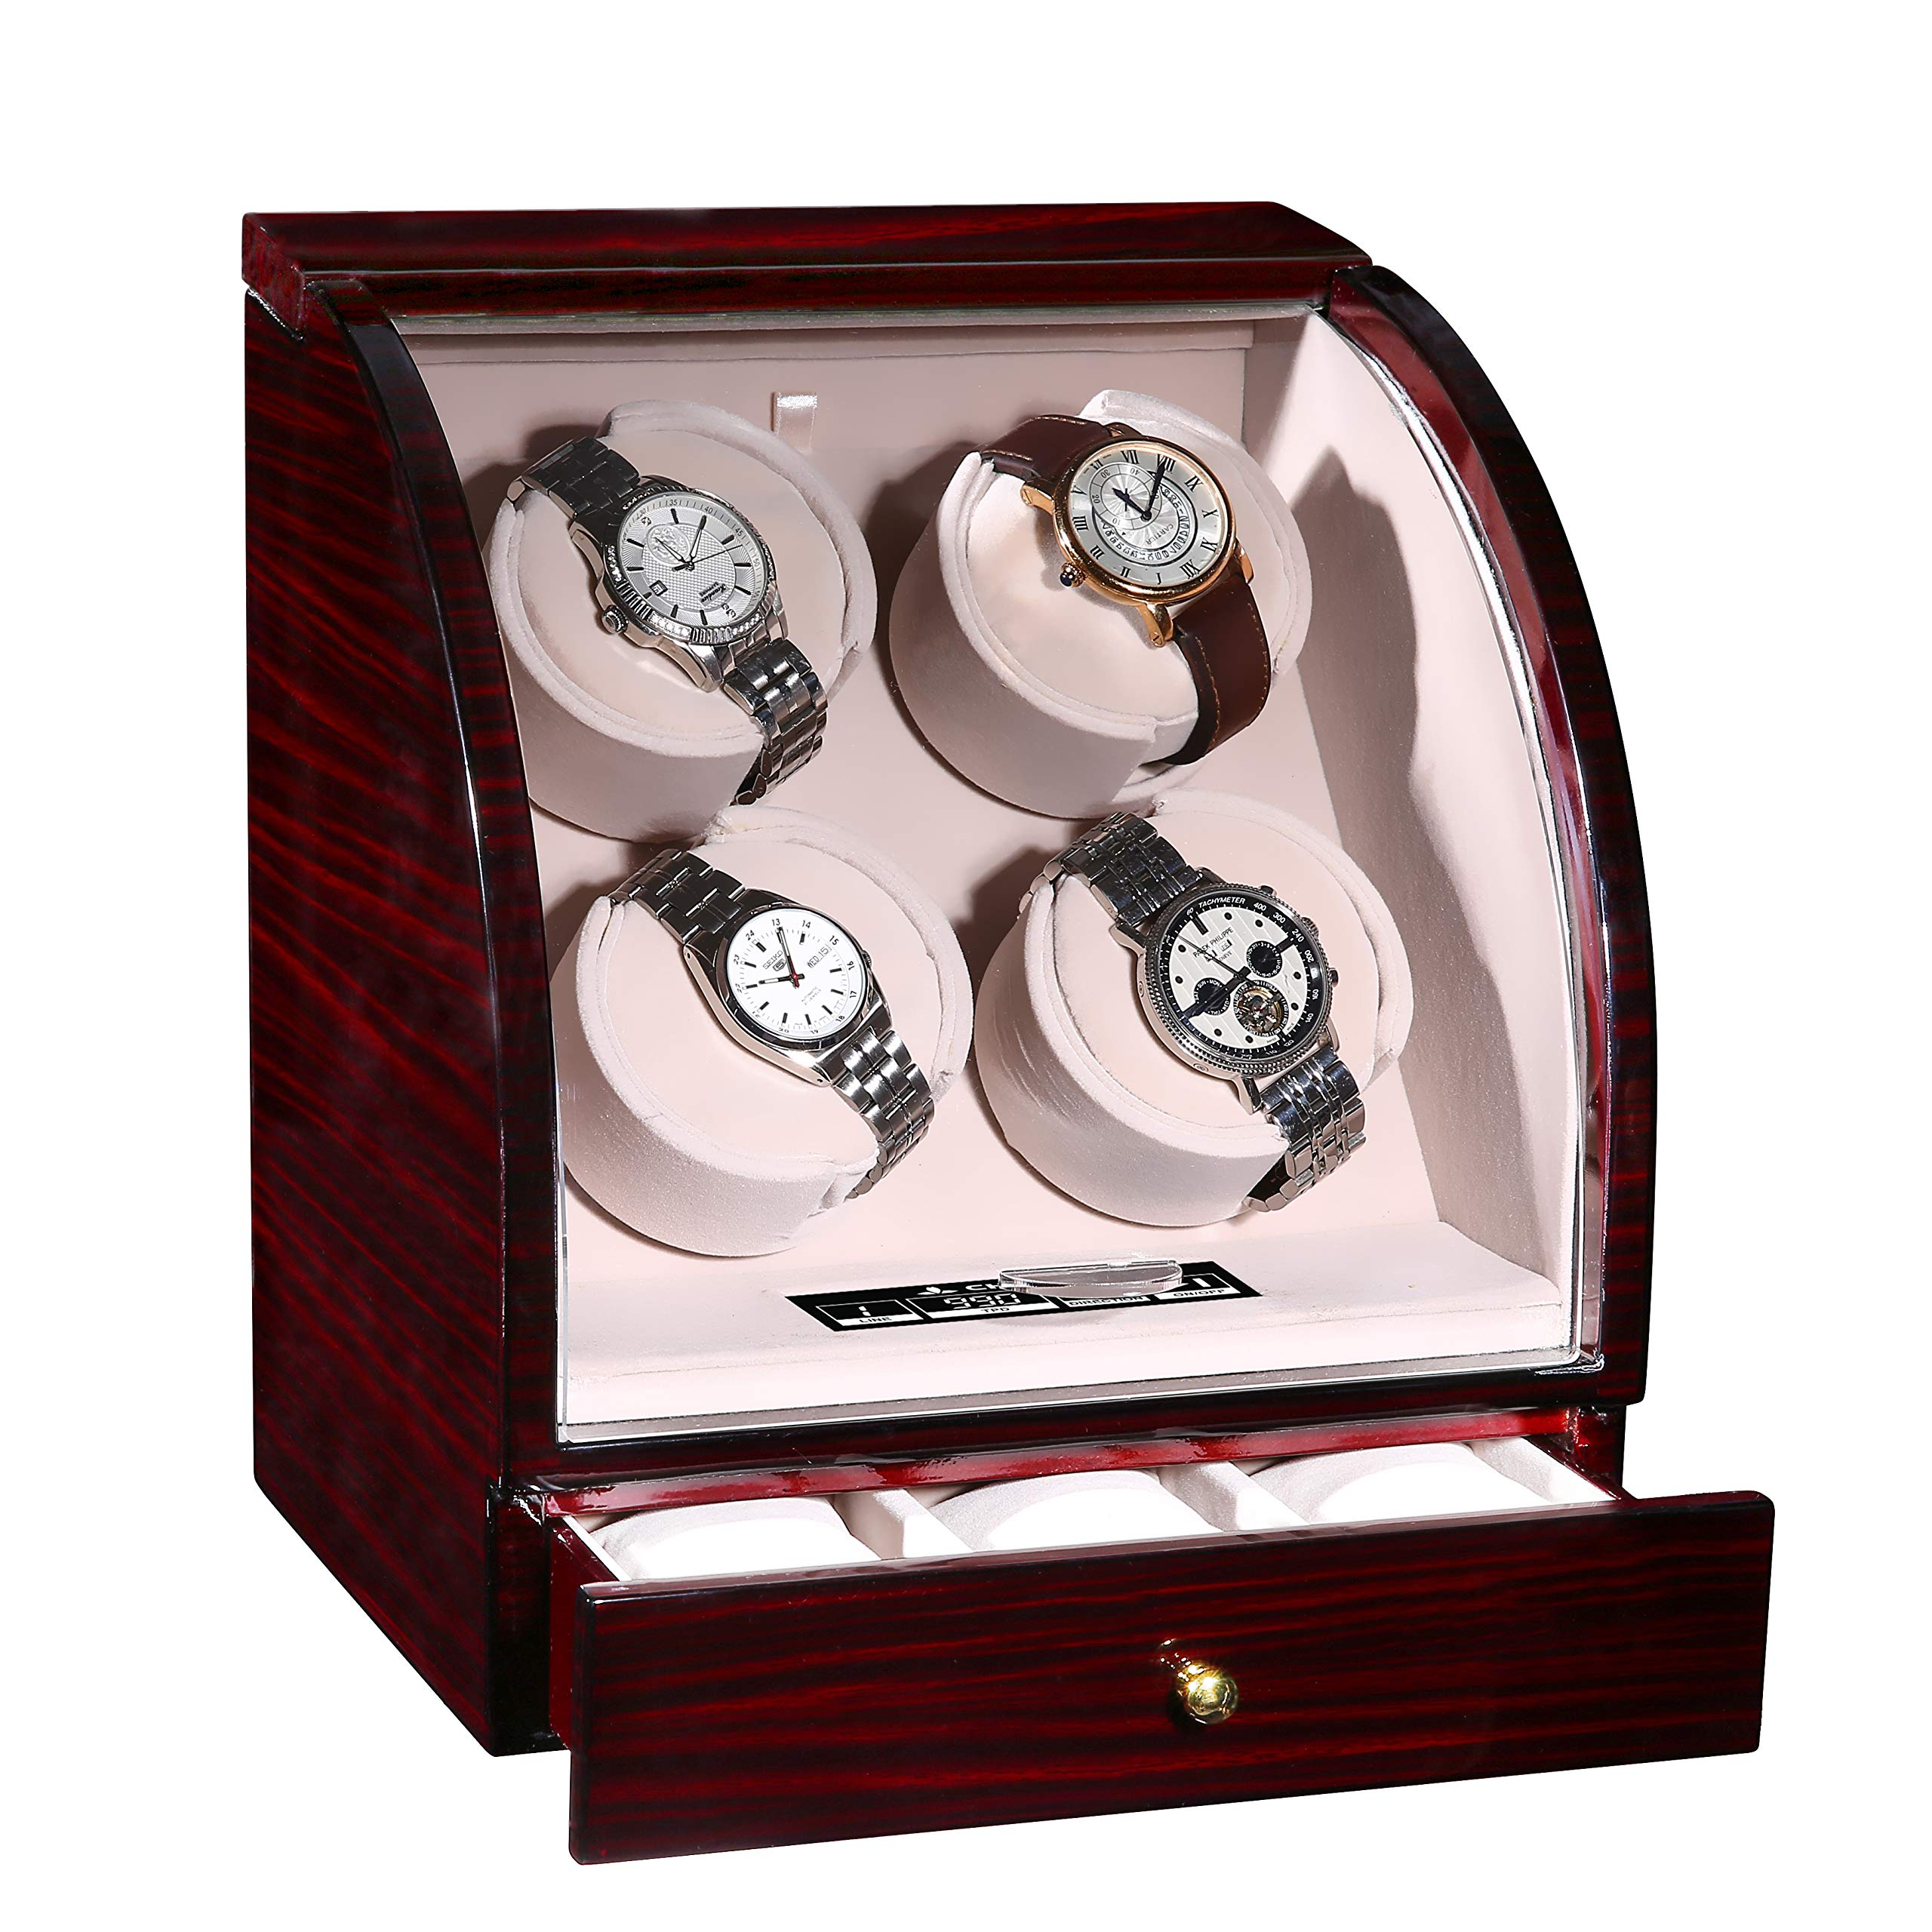 CHIYODA Automatic Quad Watch Winder with Independent Mabuchi Motors, LCD Digital Touch Display, 3 Jewelry Storage